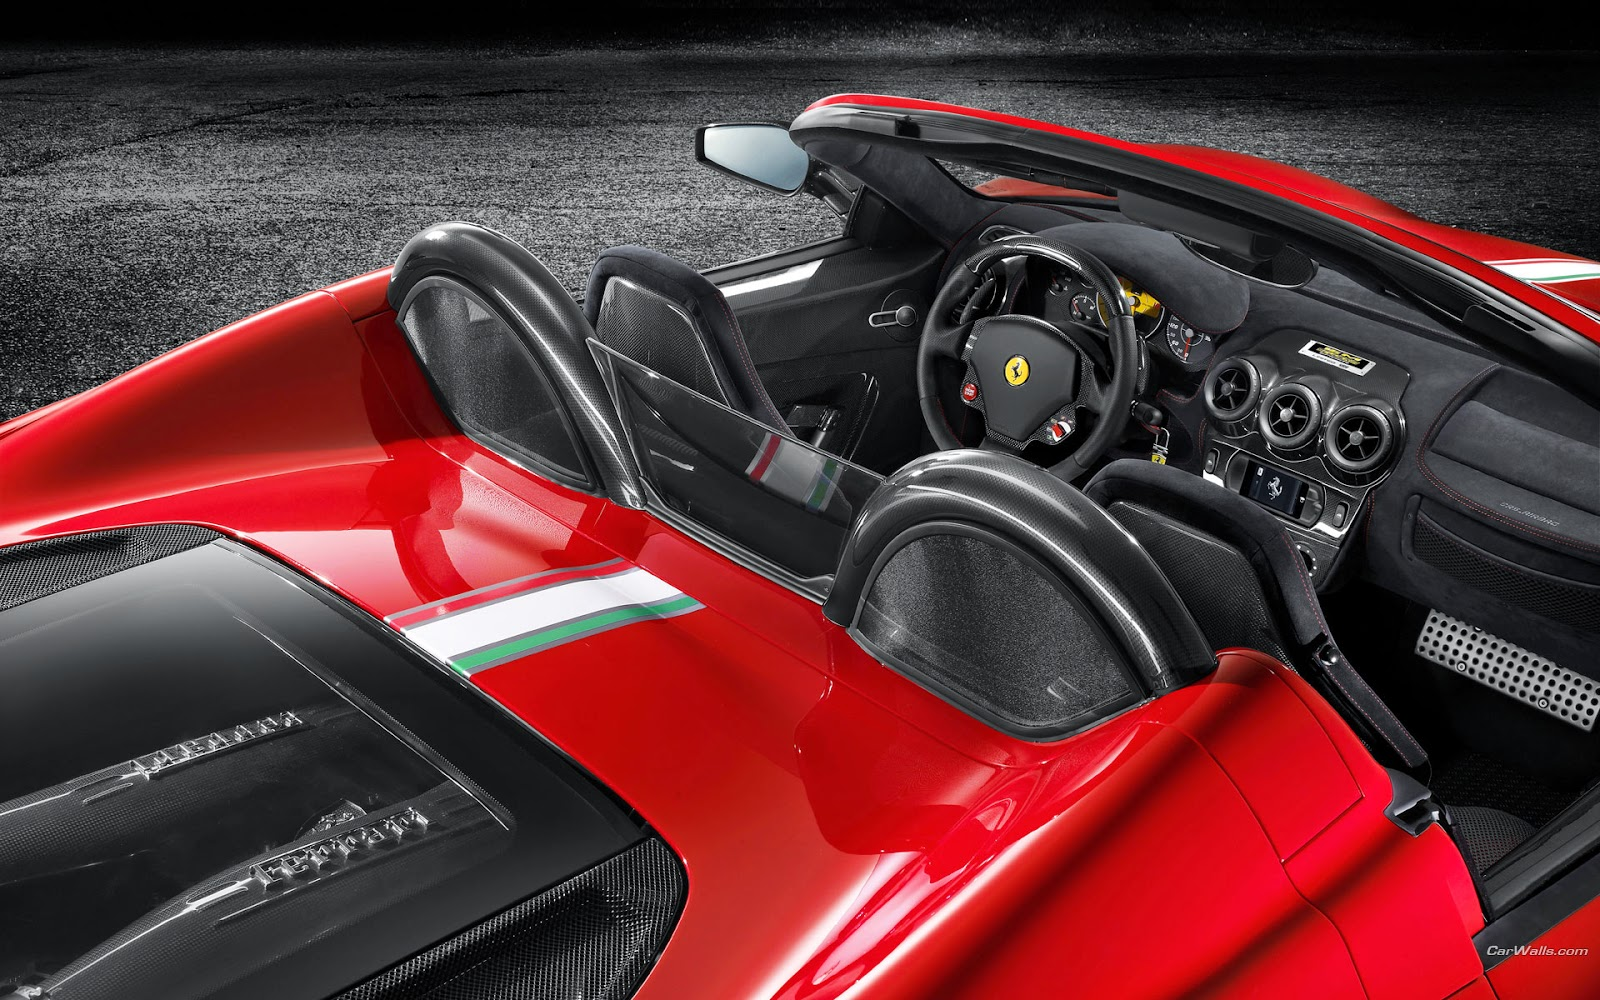 Red Hot Ferrari Interior Wallpapers